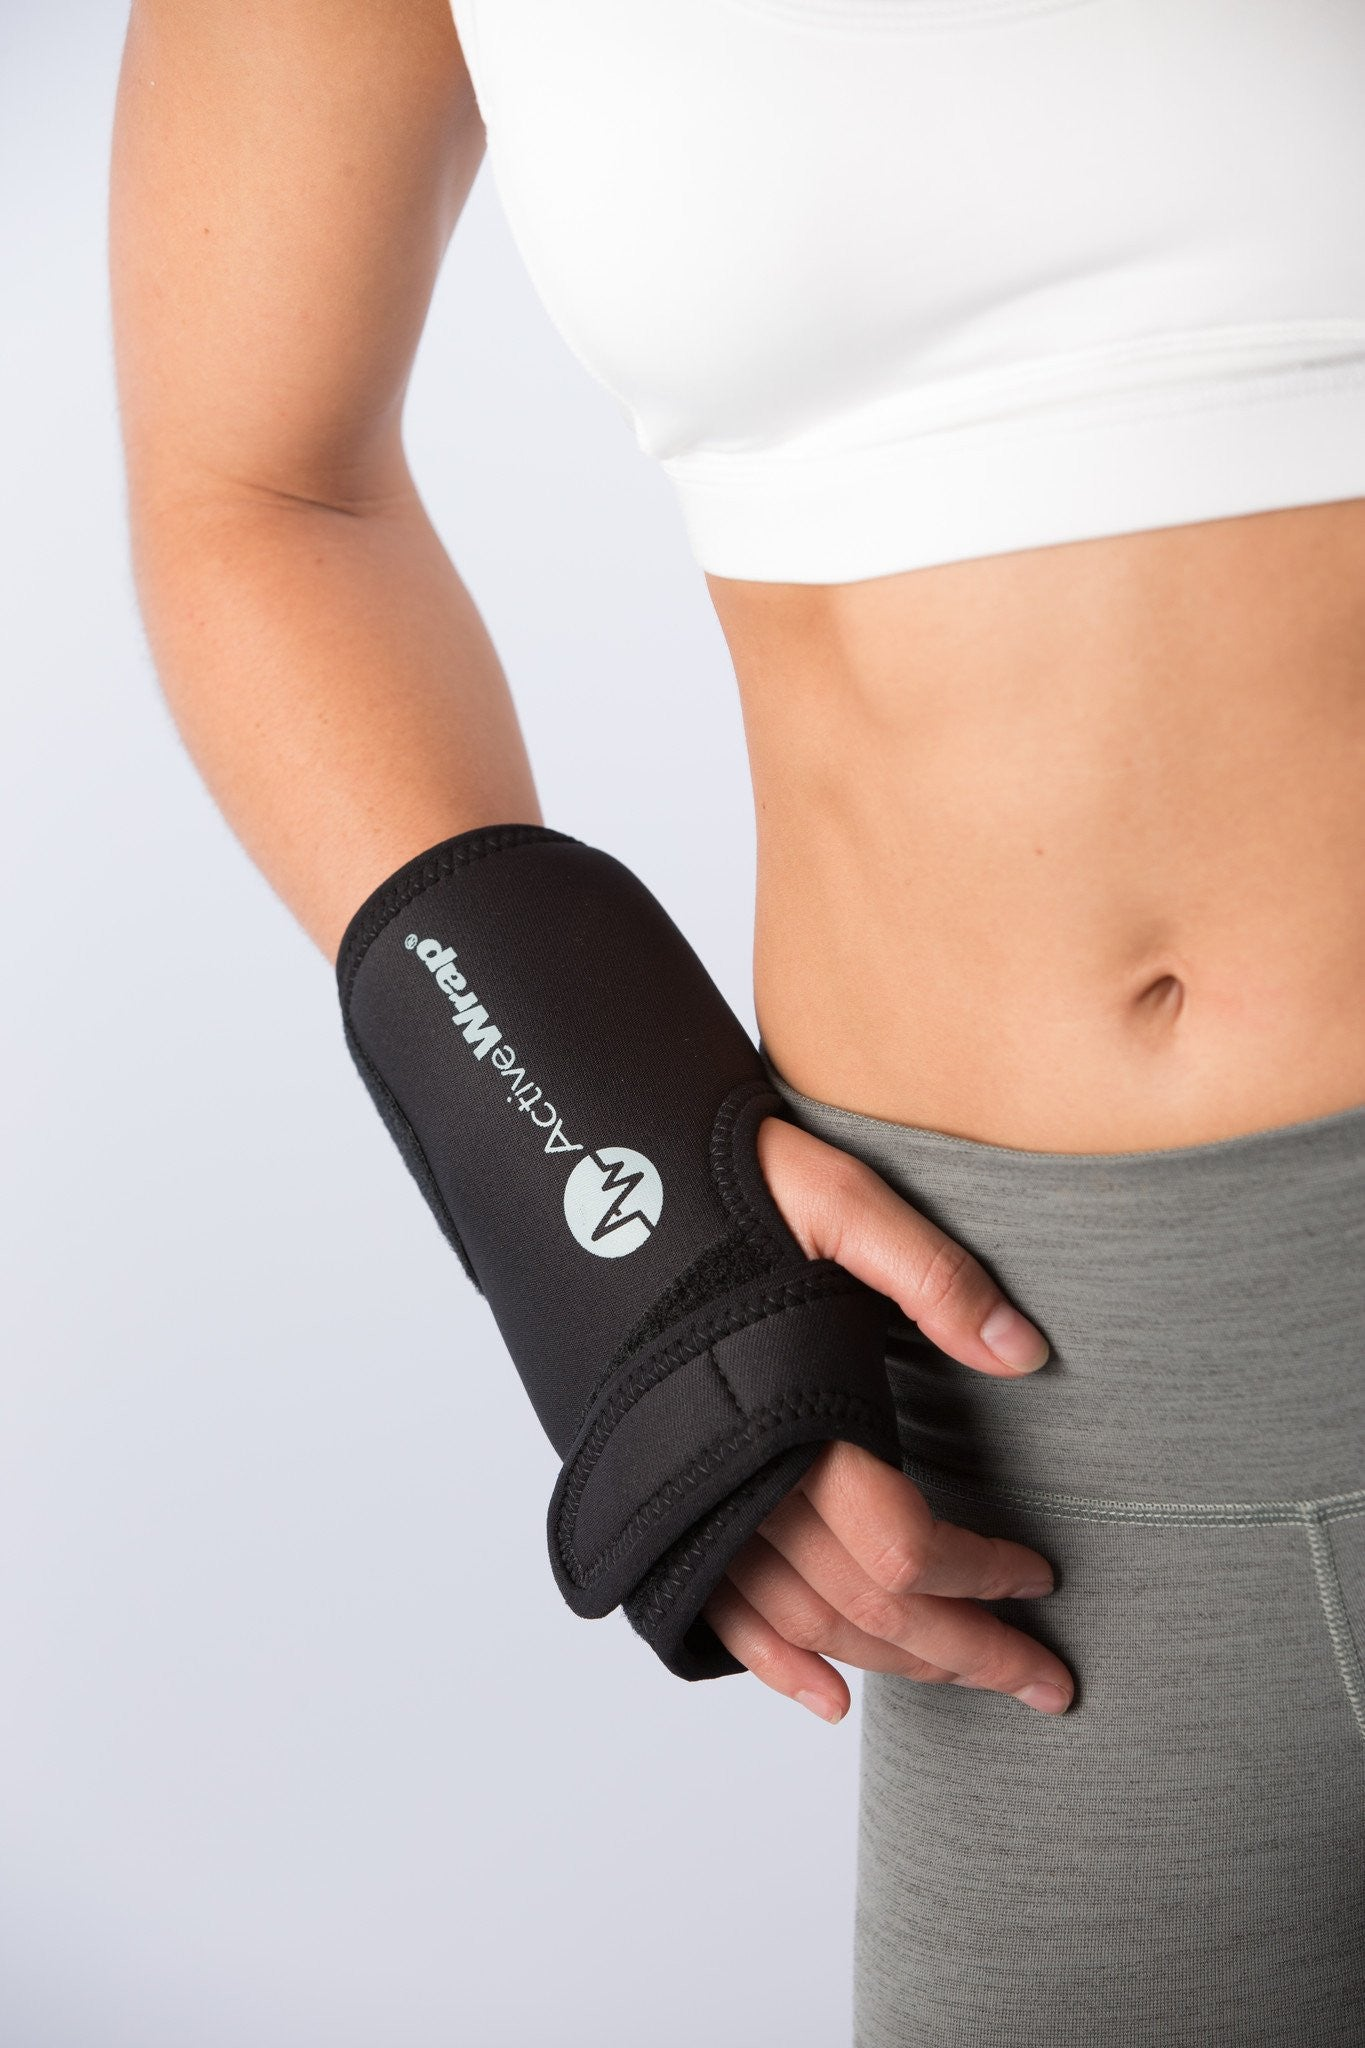 Carpal Tunnel Therapy, Wrist Heat and Ice Wrap, Wrist Support, ActiveWrap Wrist Ice Wrap, Best Ice Wrap for Carpal Tunnel